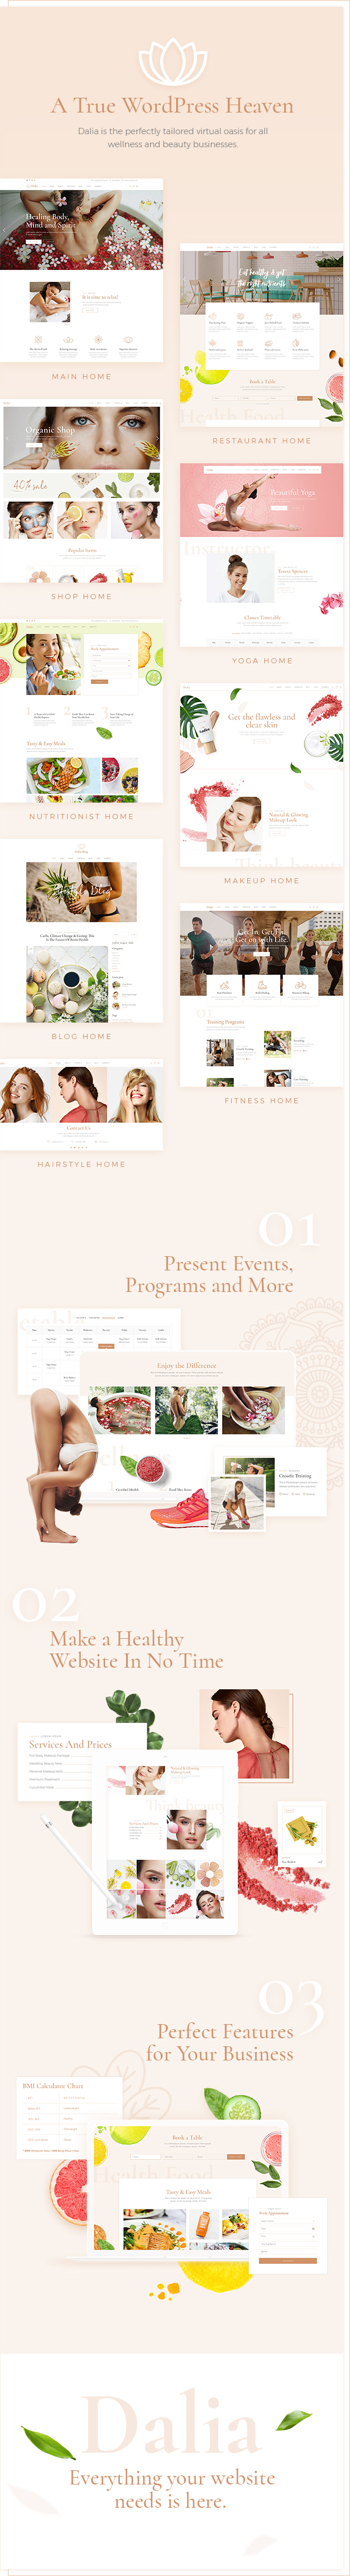 Dalia - Modern Wellness & Cosmetics Theme - 1